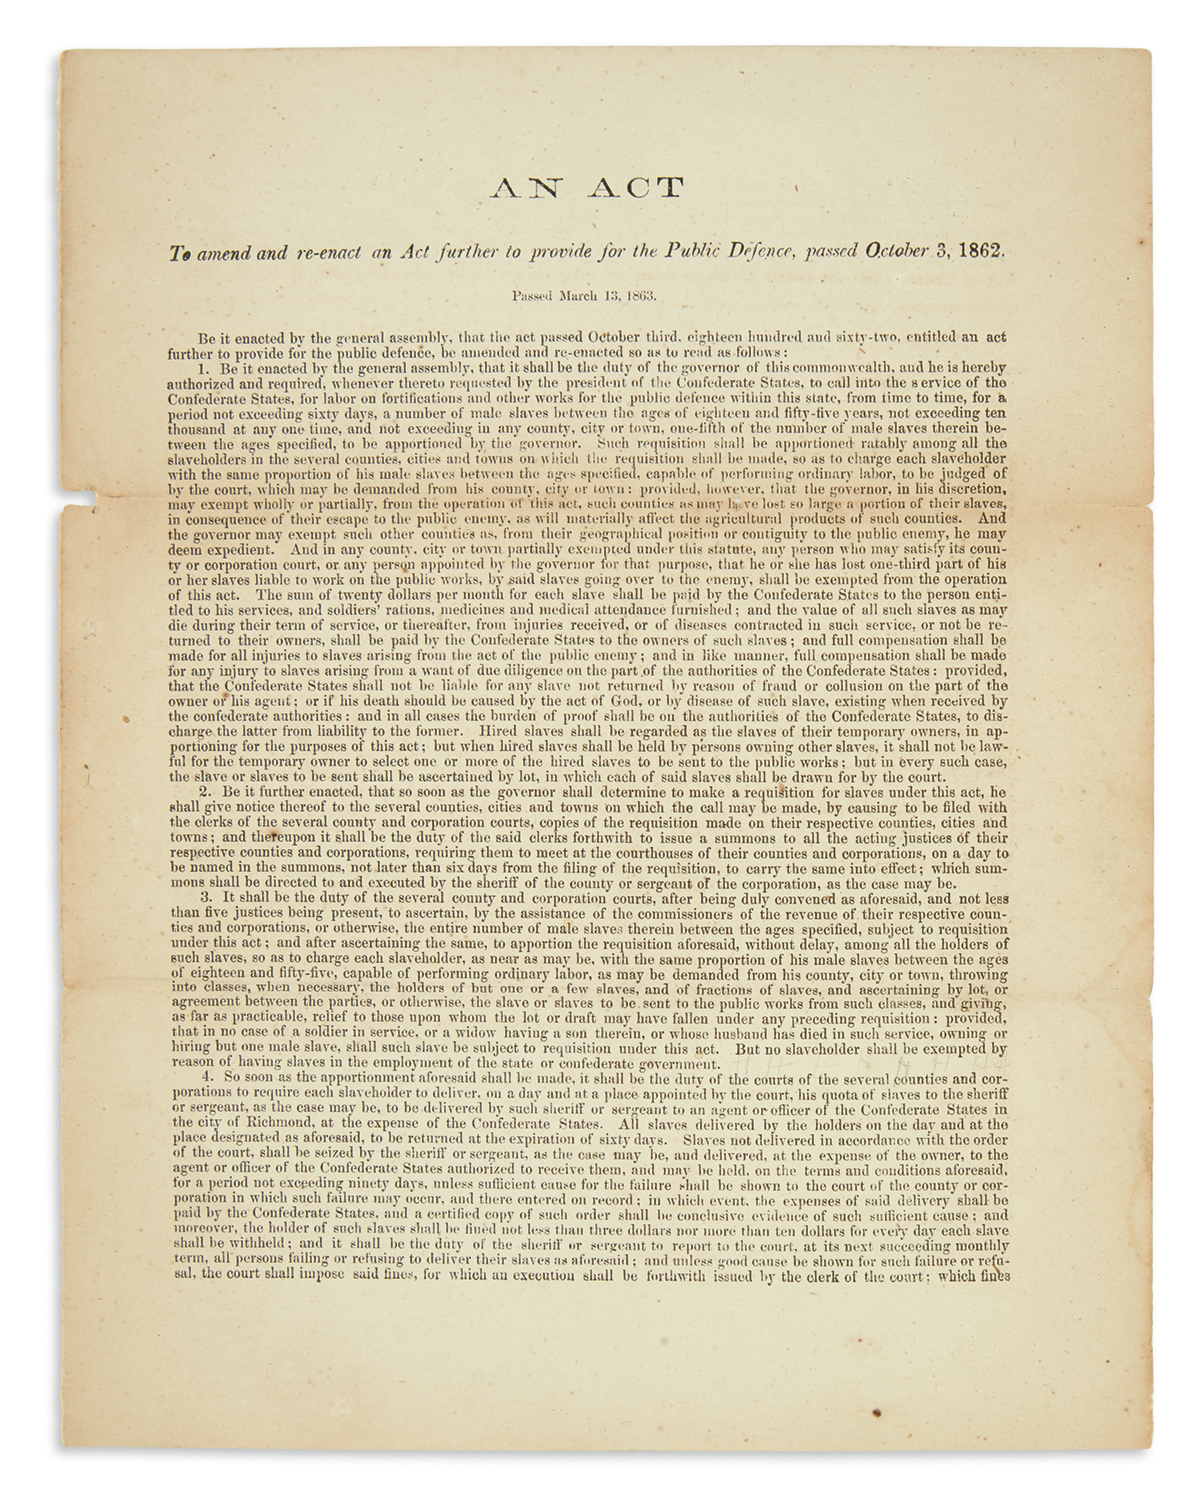 (SLAVERY AND ABOLITION.) Packet of printed Virginia circulars relating to the provision of slaves for the defense of the Confederacy.